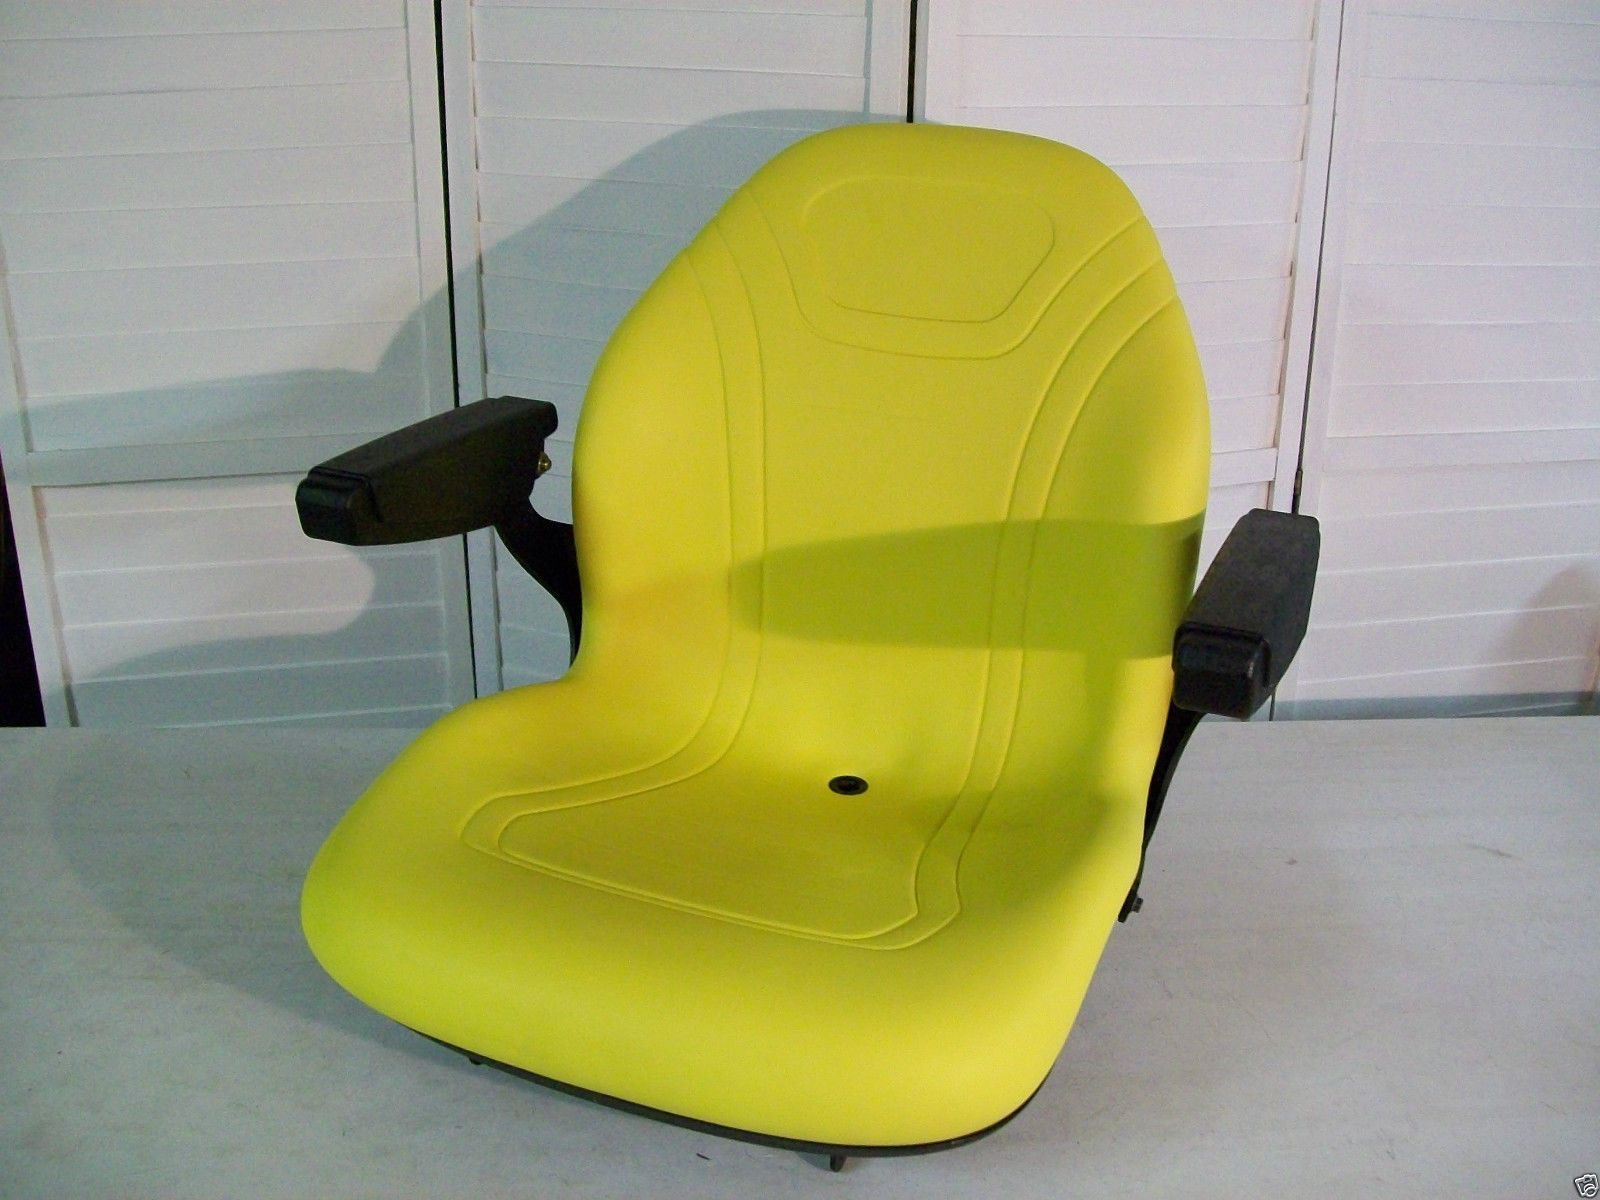 John Deere Tractor Seats Replacement 5310 Model : High back replacement seat with arm rests to fit john